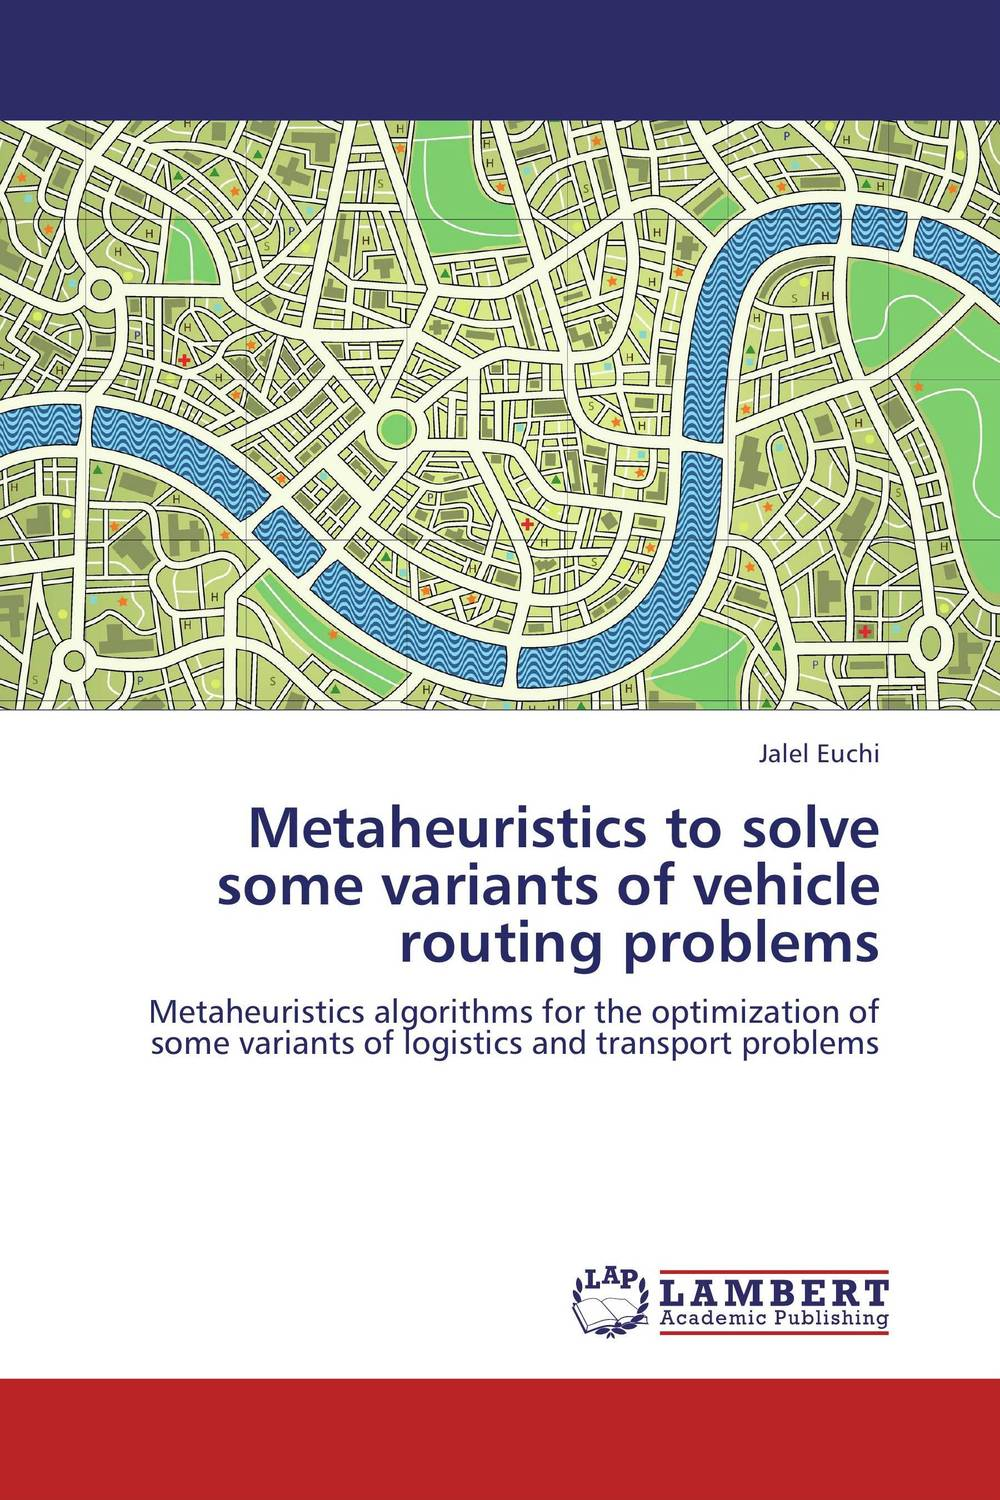 Metaheuristics to solve some variants of vehicle routing problems models for a class of sustainable supply chain routing problems